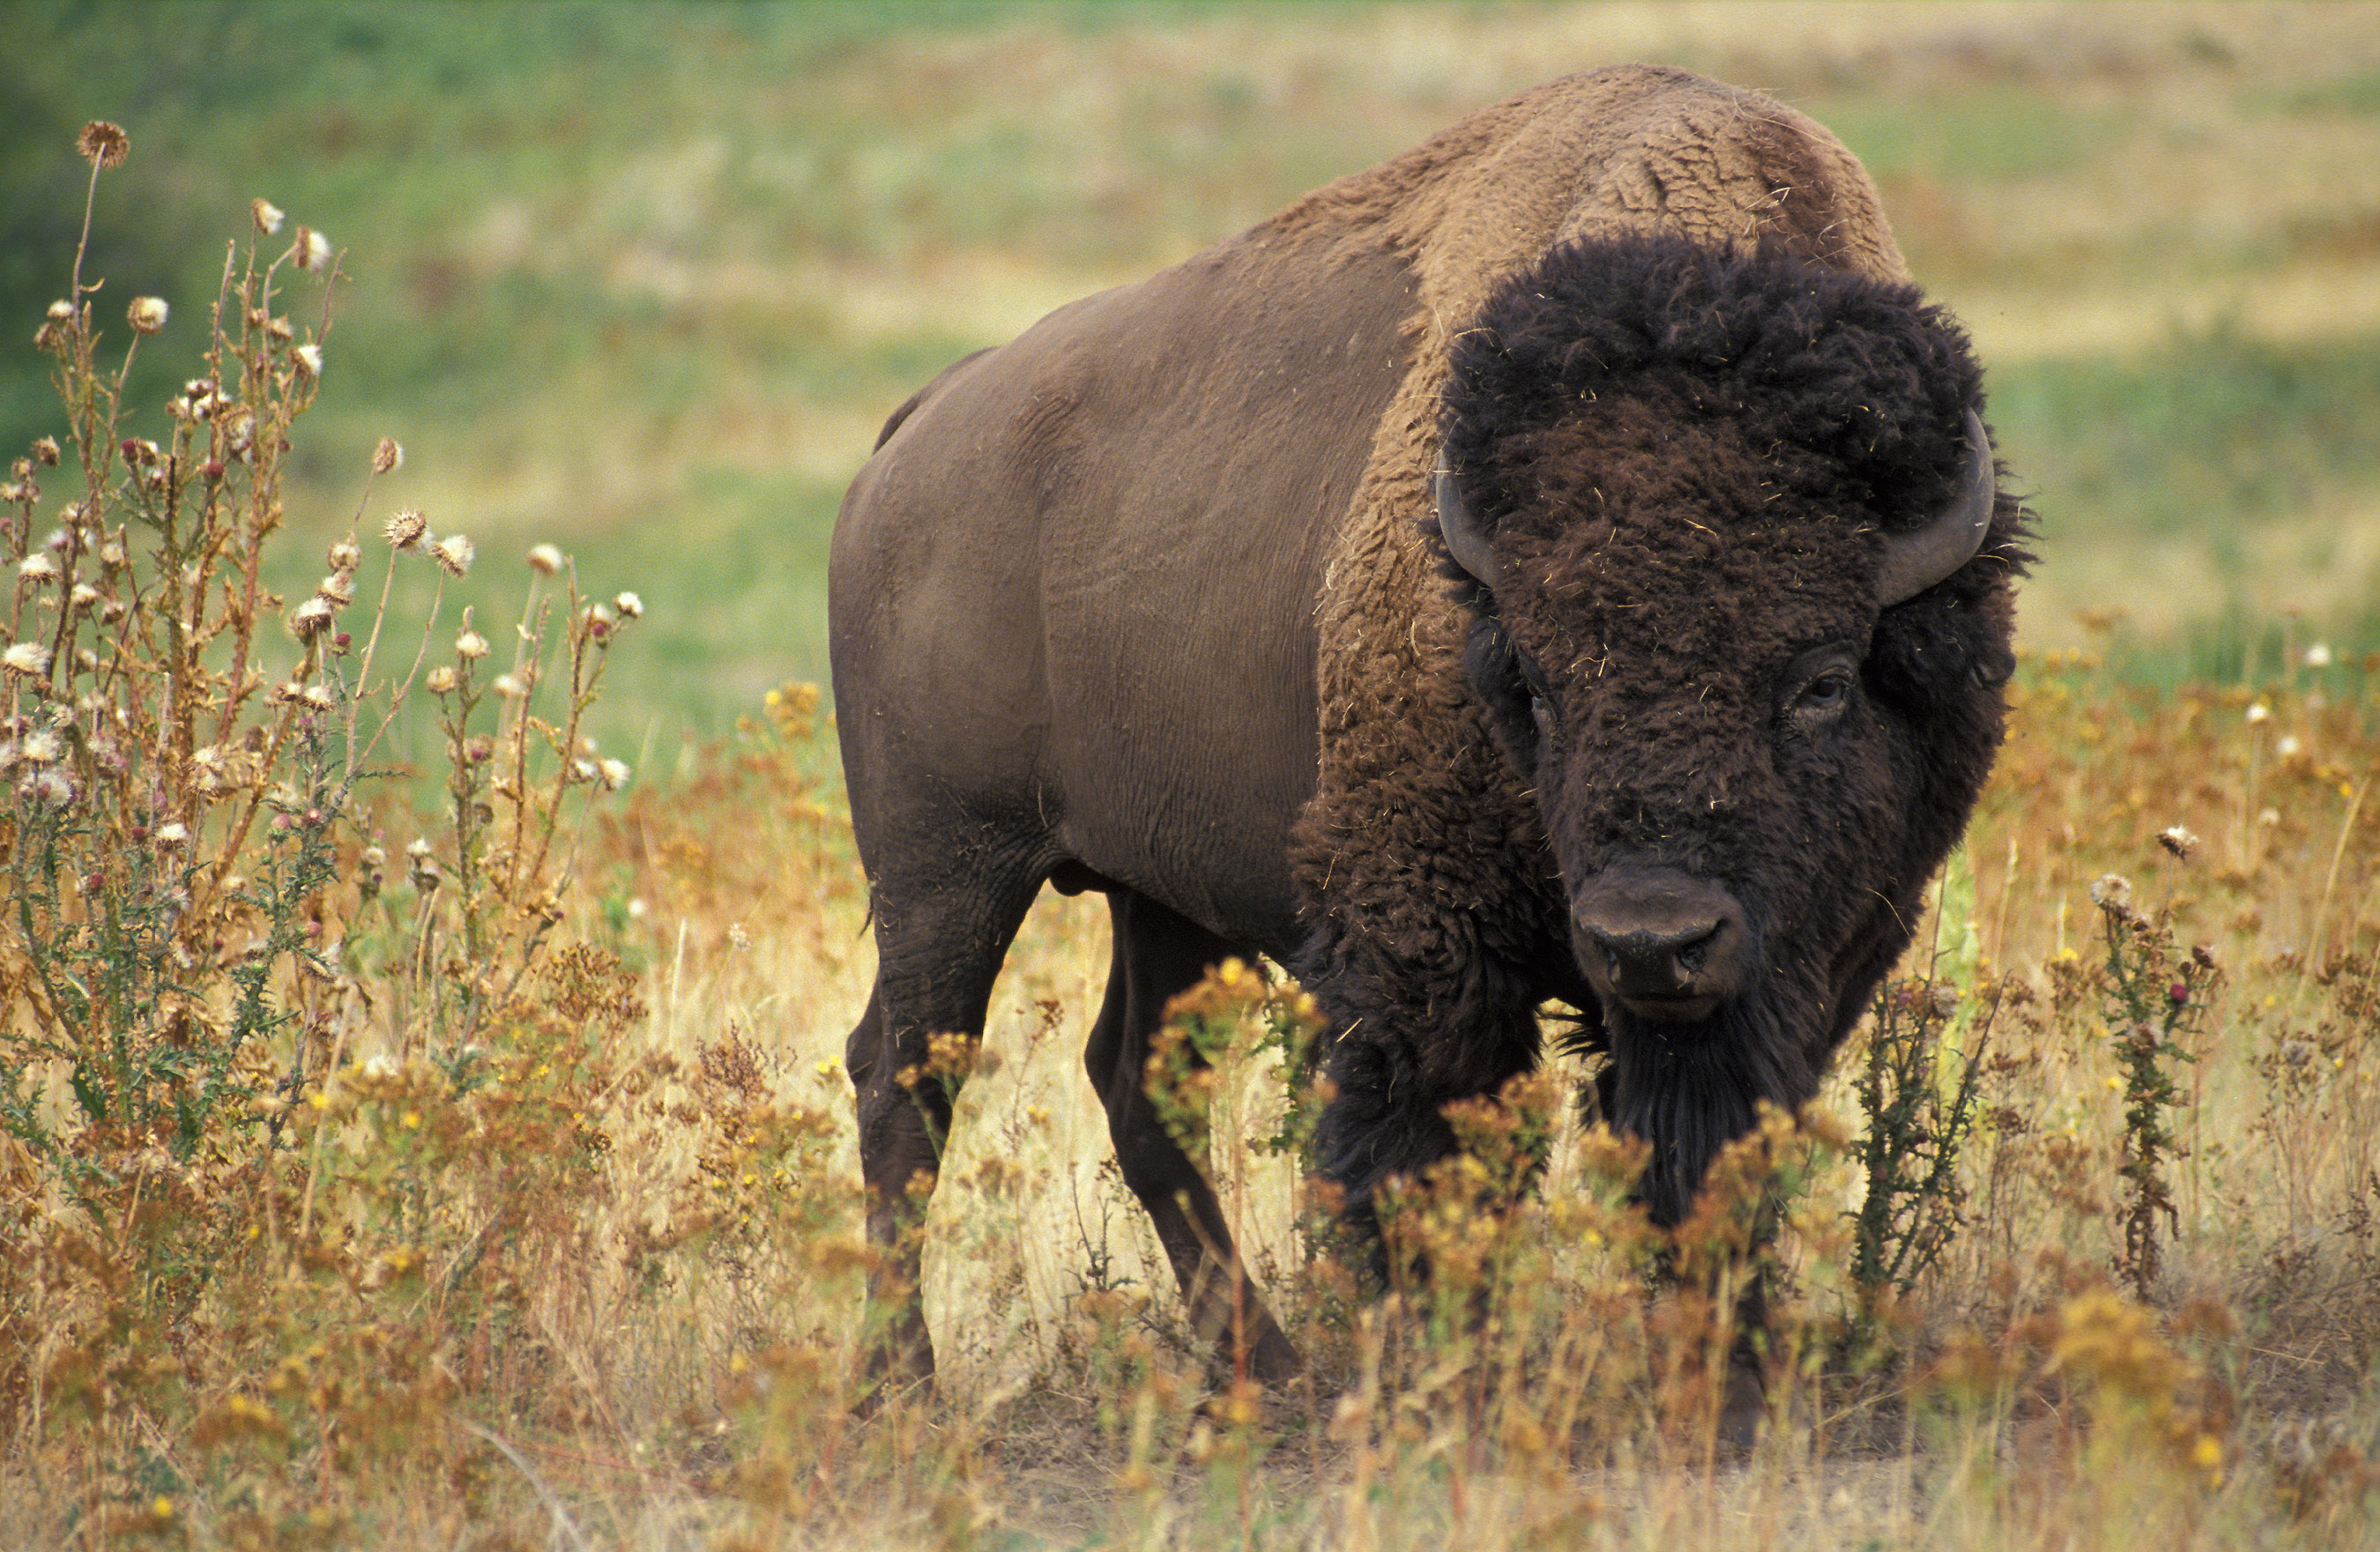 Huge Bison Charges At Man Who Had Been Taunting It In Road American bison k5680 1